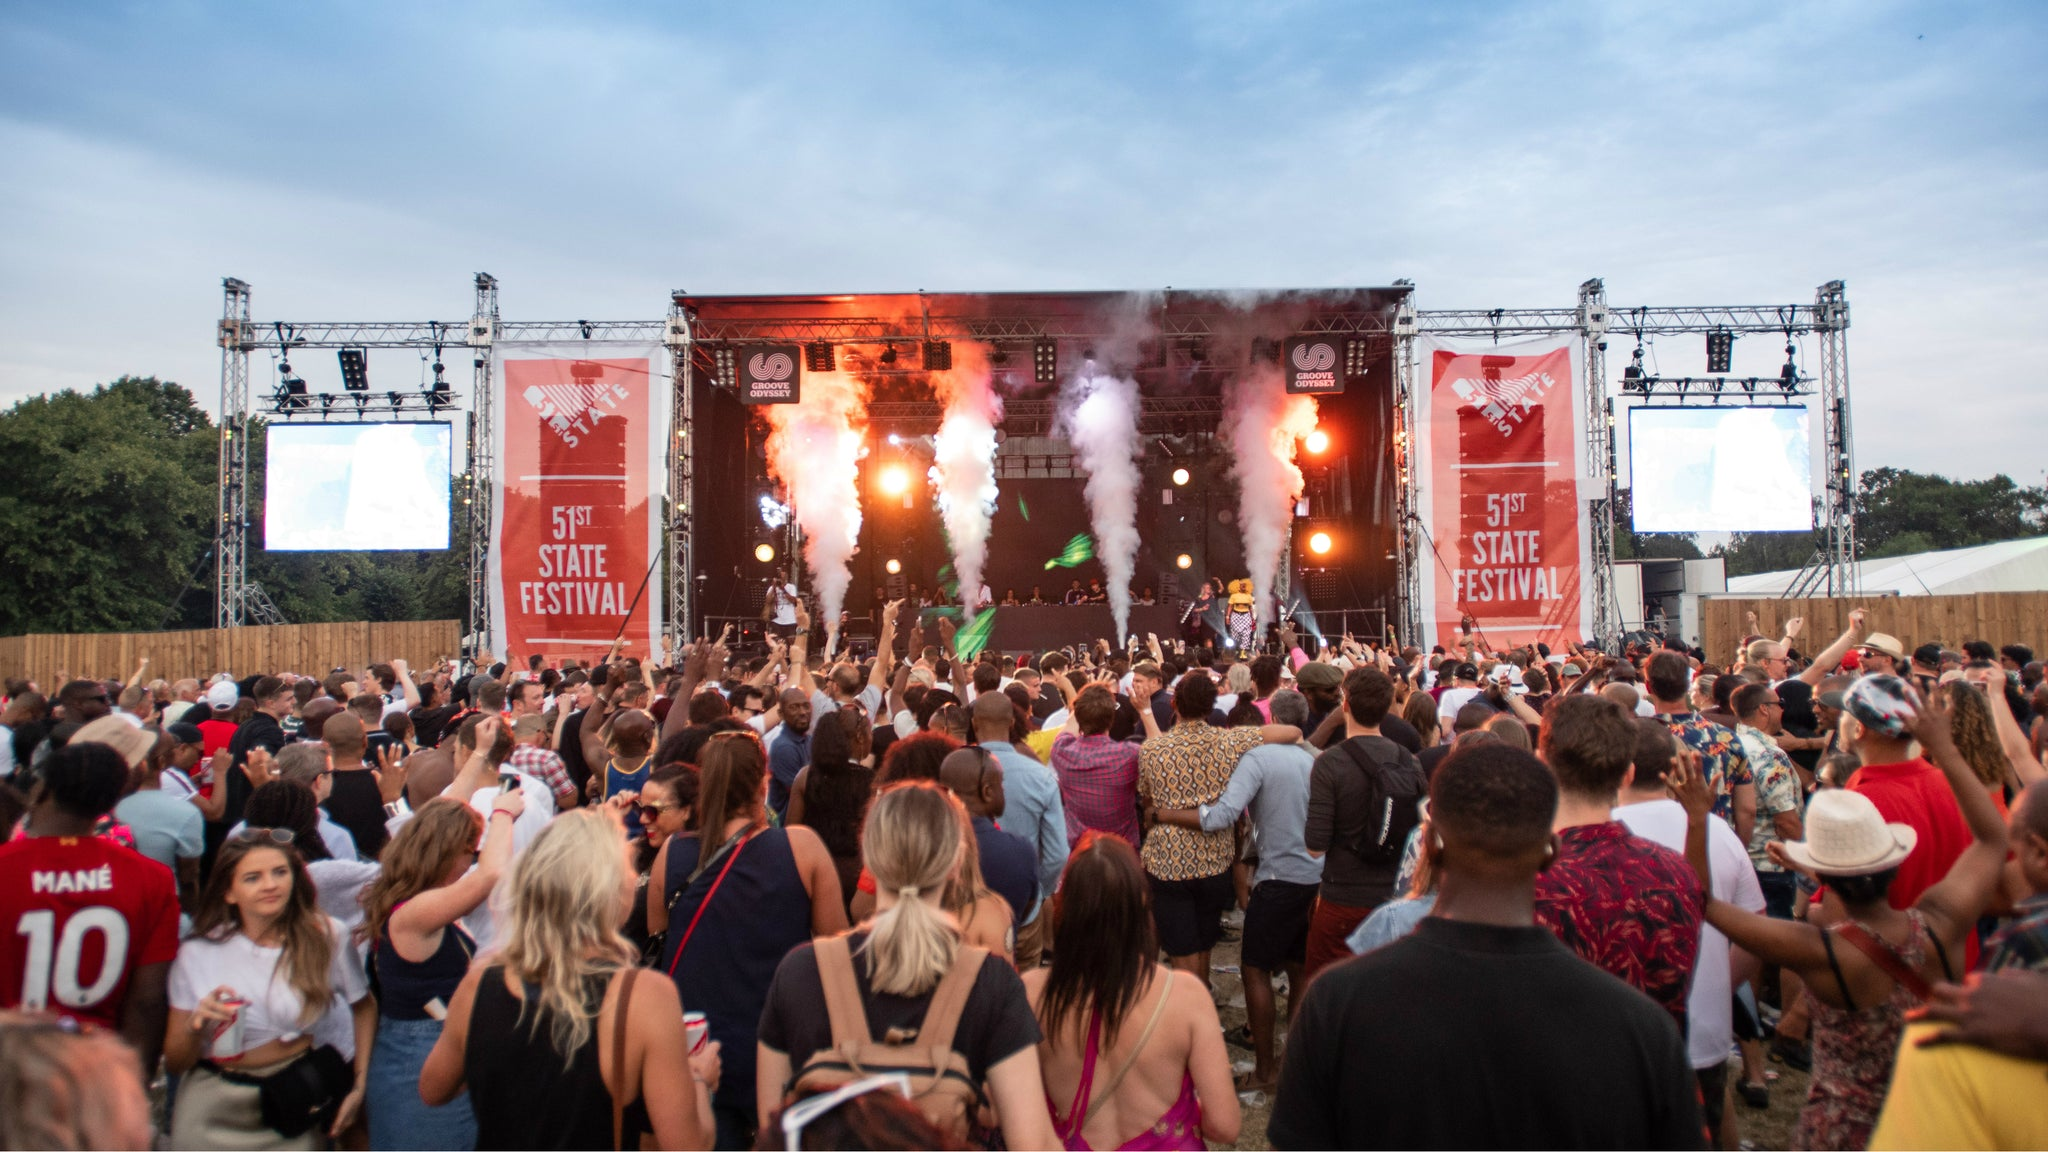 The 51st State Festival 2020 After movie is here 😍 Like & Tag a mate to win a money can't buy backstage experience: